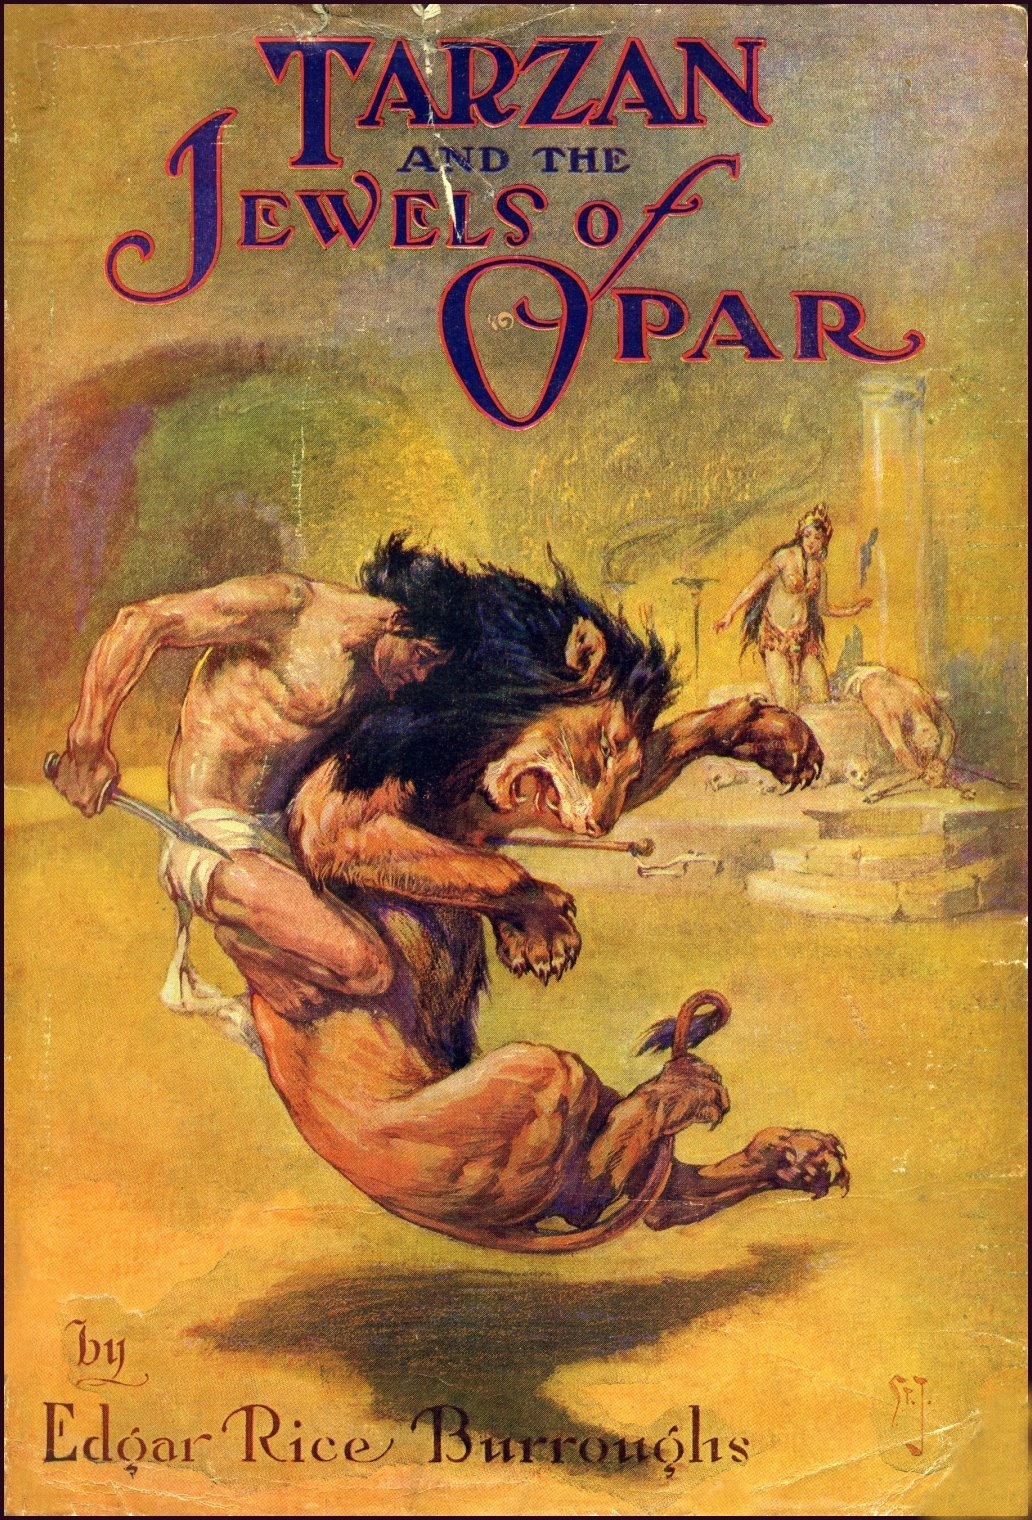 book-jacket for Tarzan and the Jewels of Opar, illustration by J. Allen St. John c. 1916